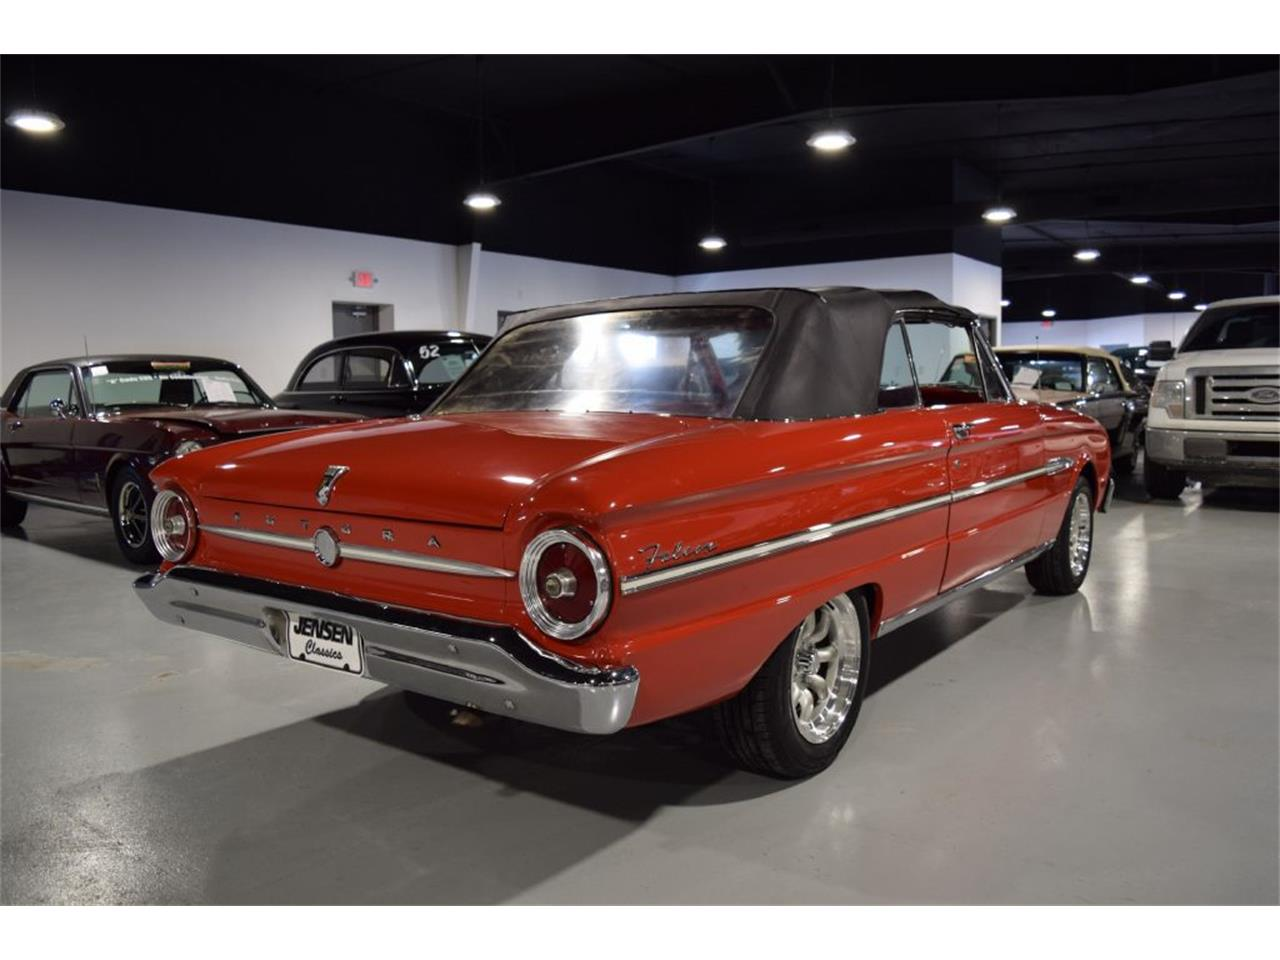 1963 Ford Falcon Futura for sale in Sioux City, IA – photo 19